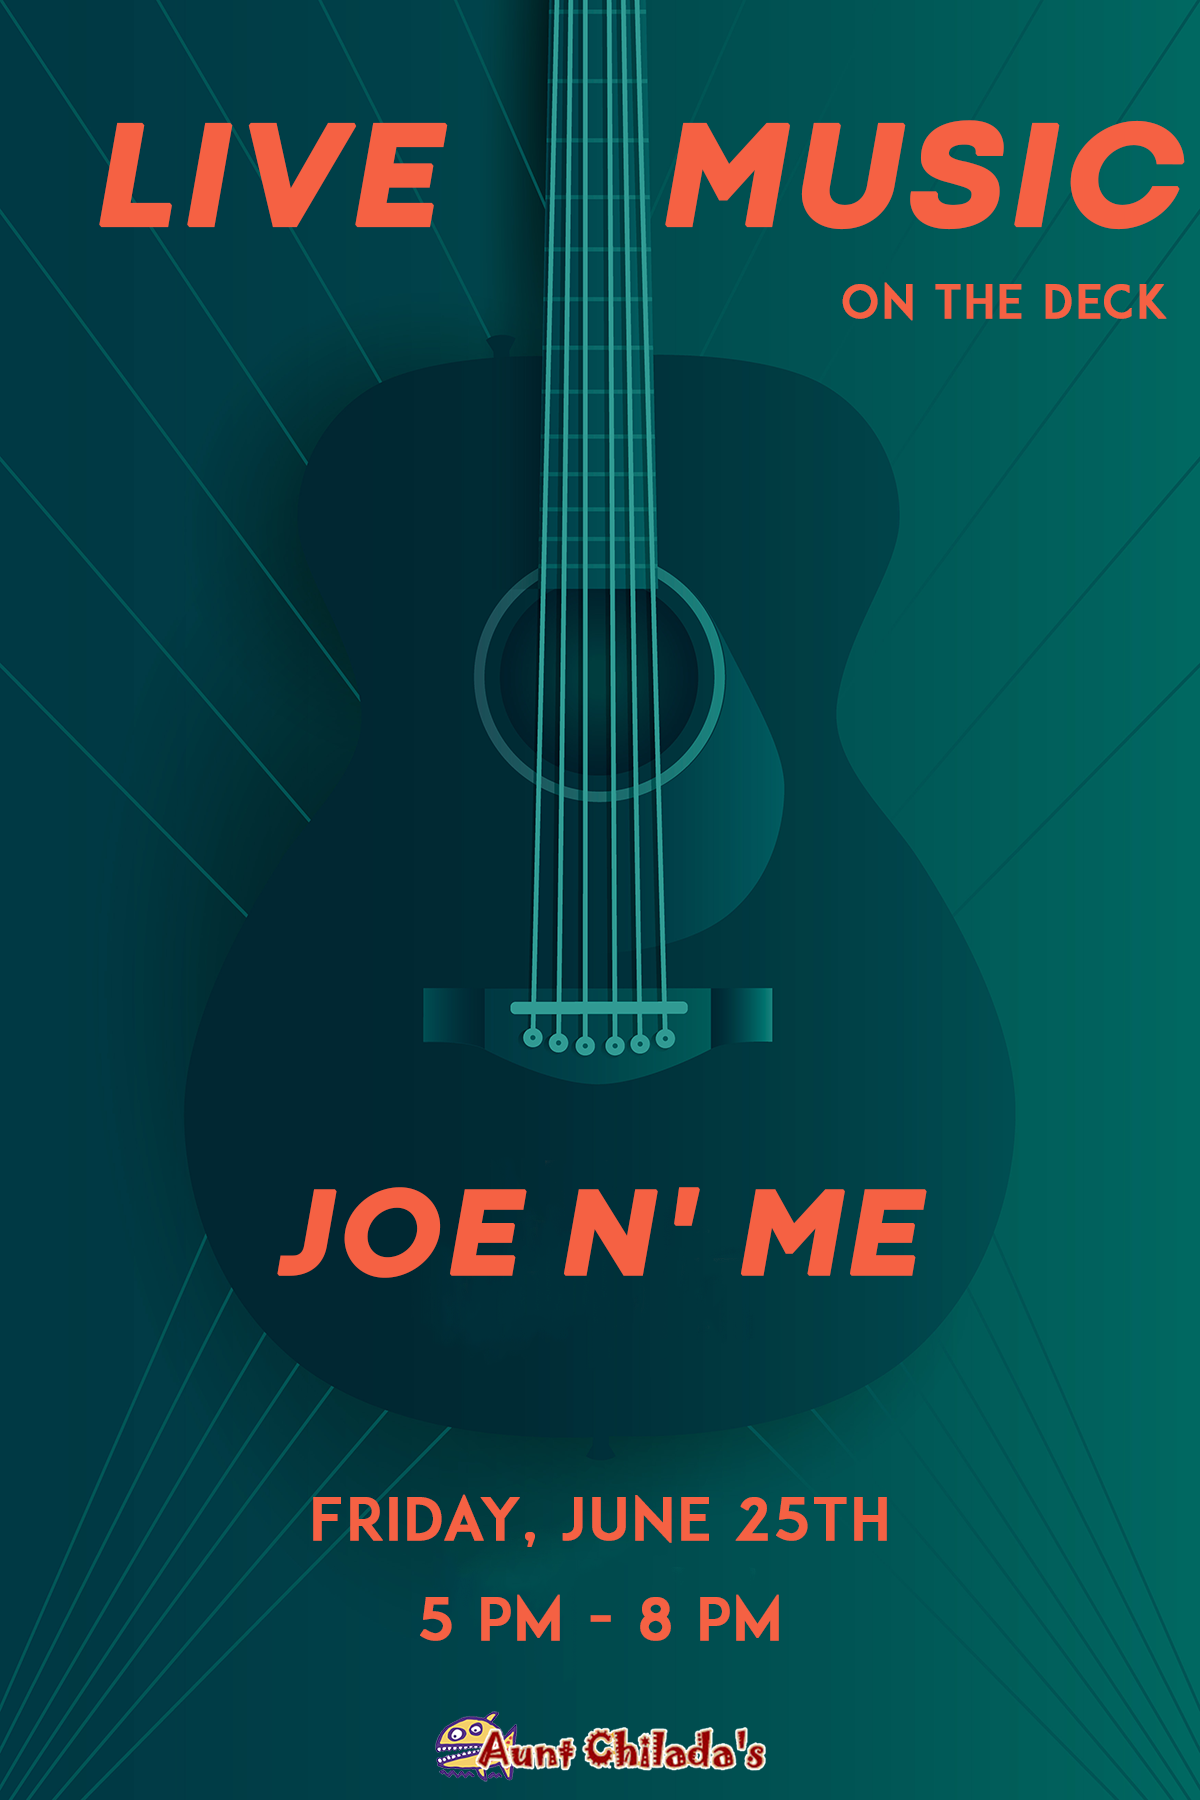 Joe N' Me on Friday June 25th from 5 PM to 8 PM